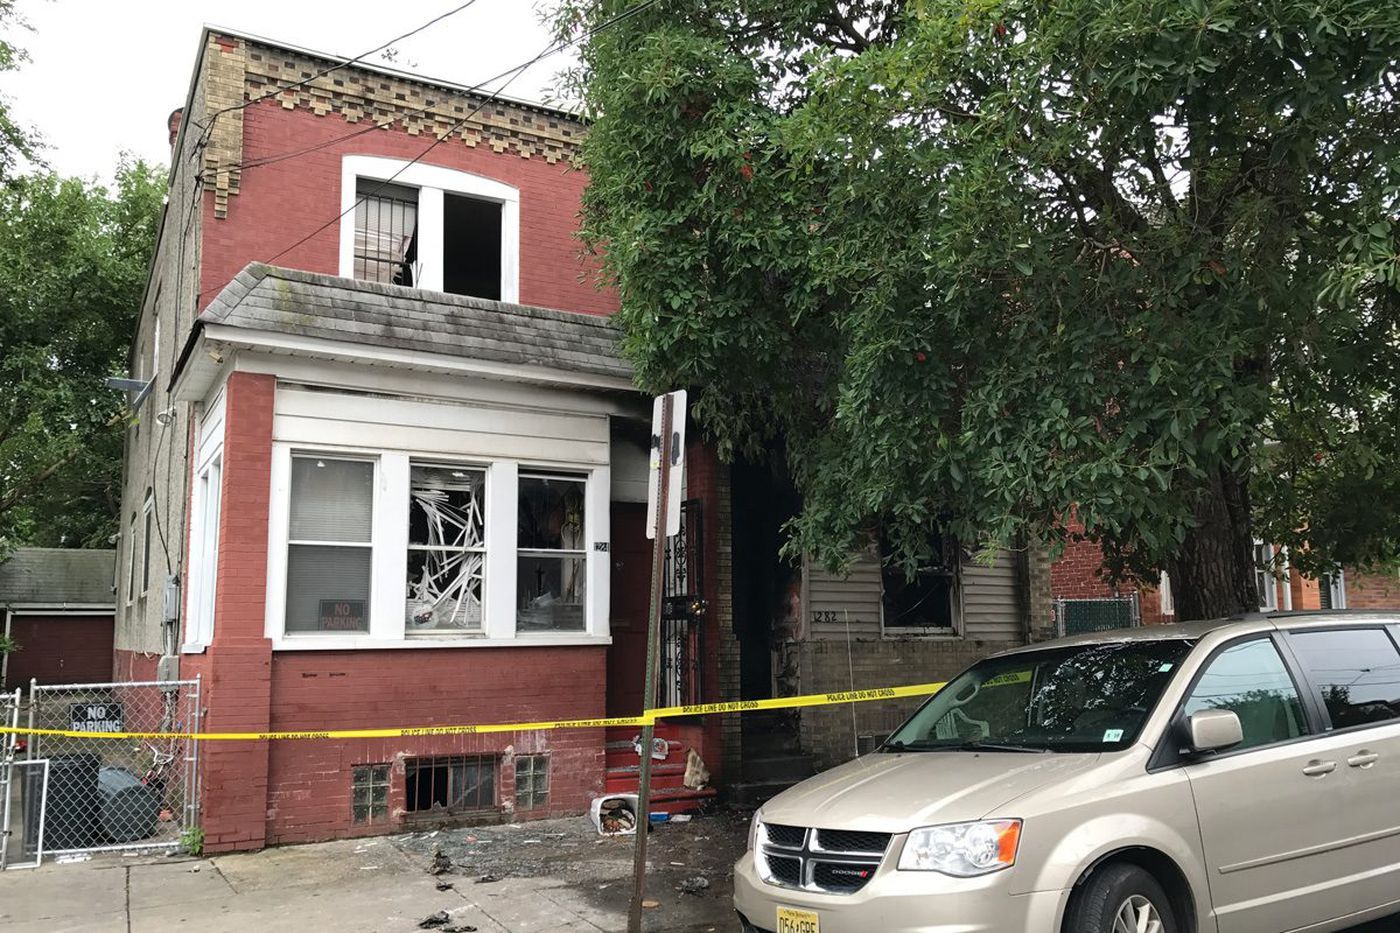 4-year-old killed in South Jersey fire had 'biggest personality ever'